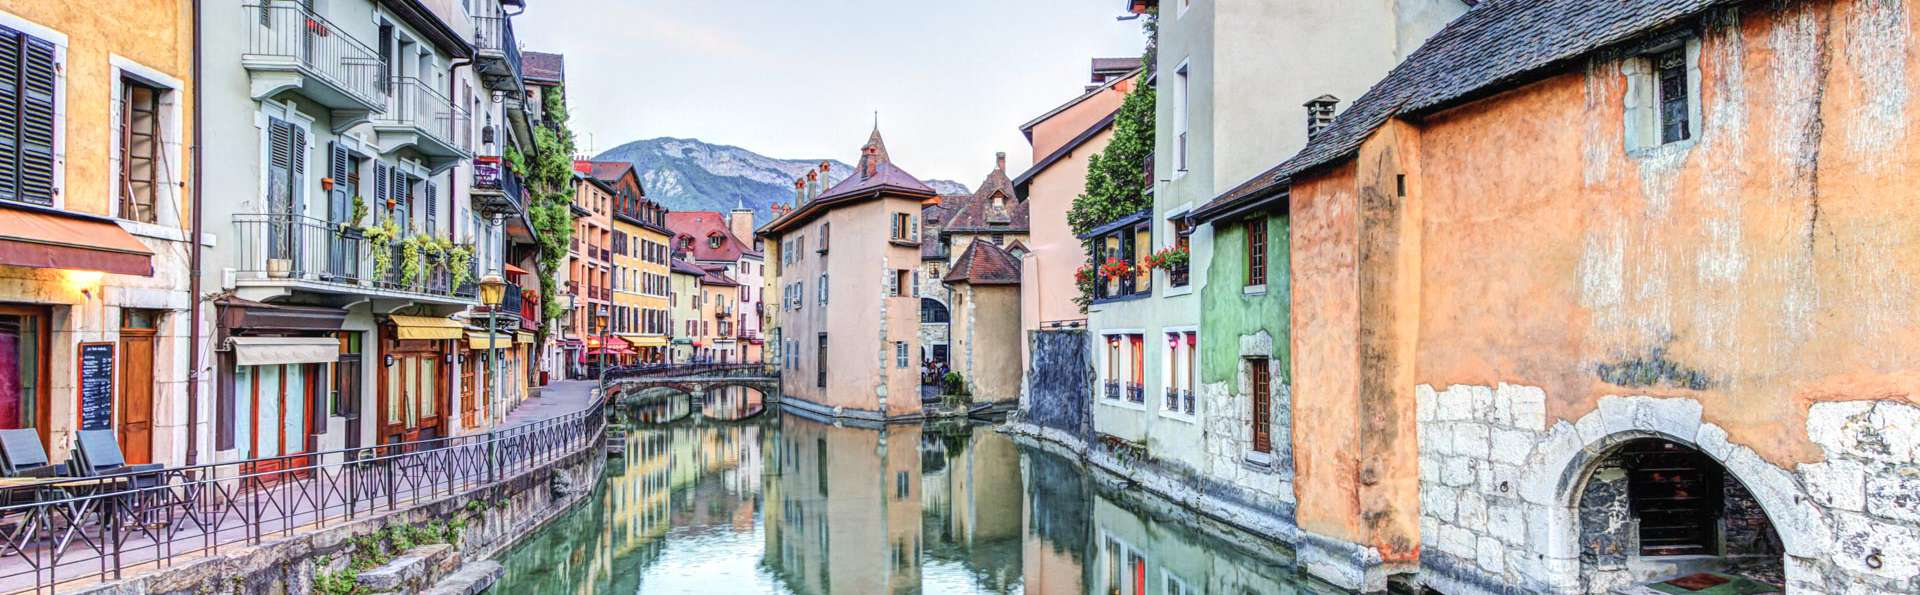 Best Western International Annecy - EDIT_ANNECY_03.jpg